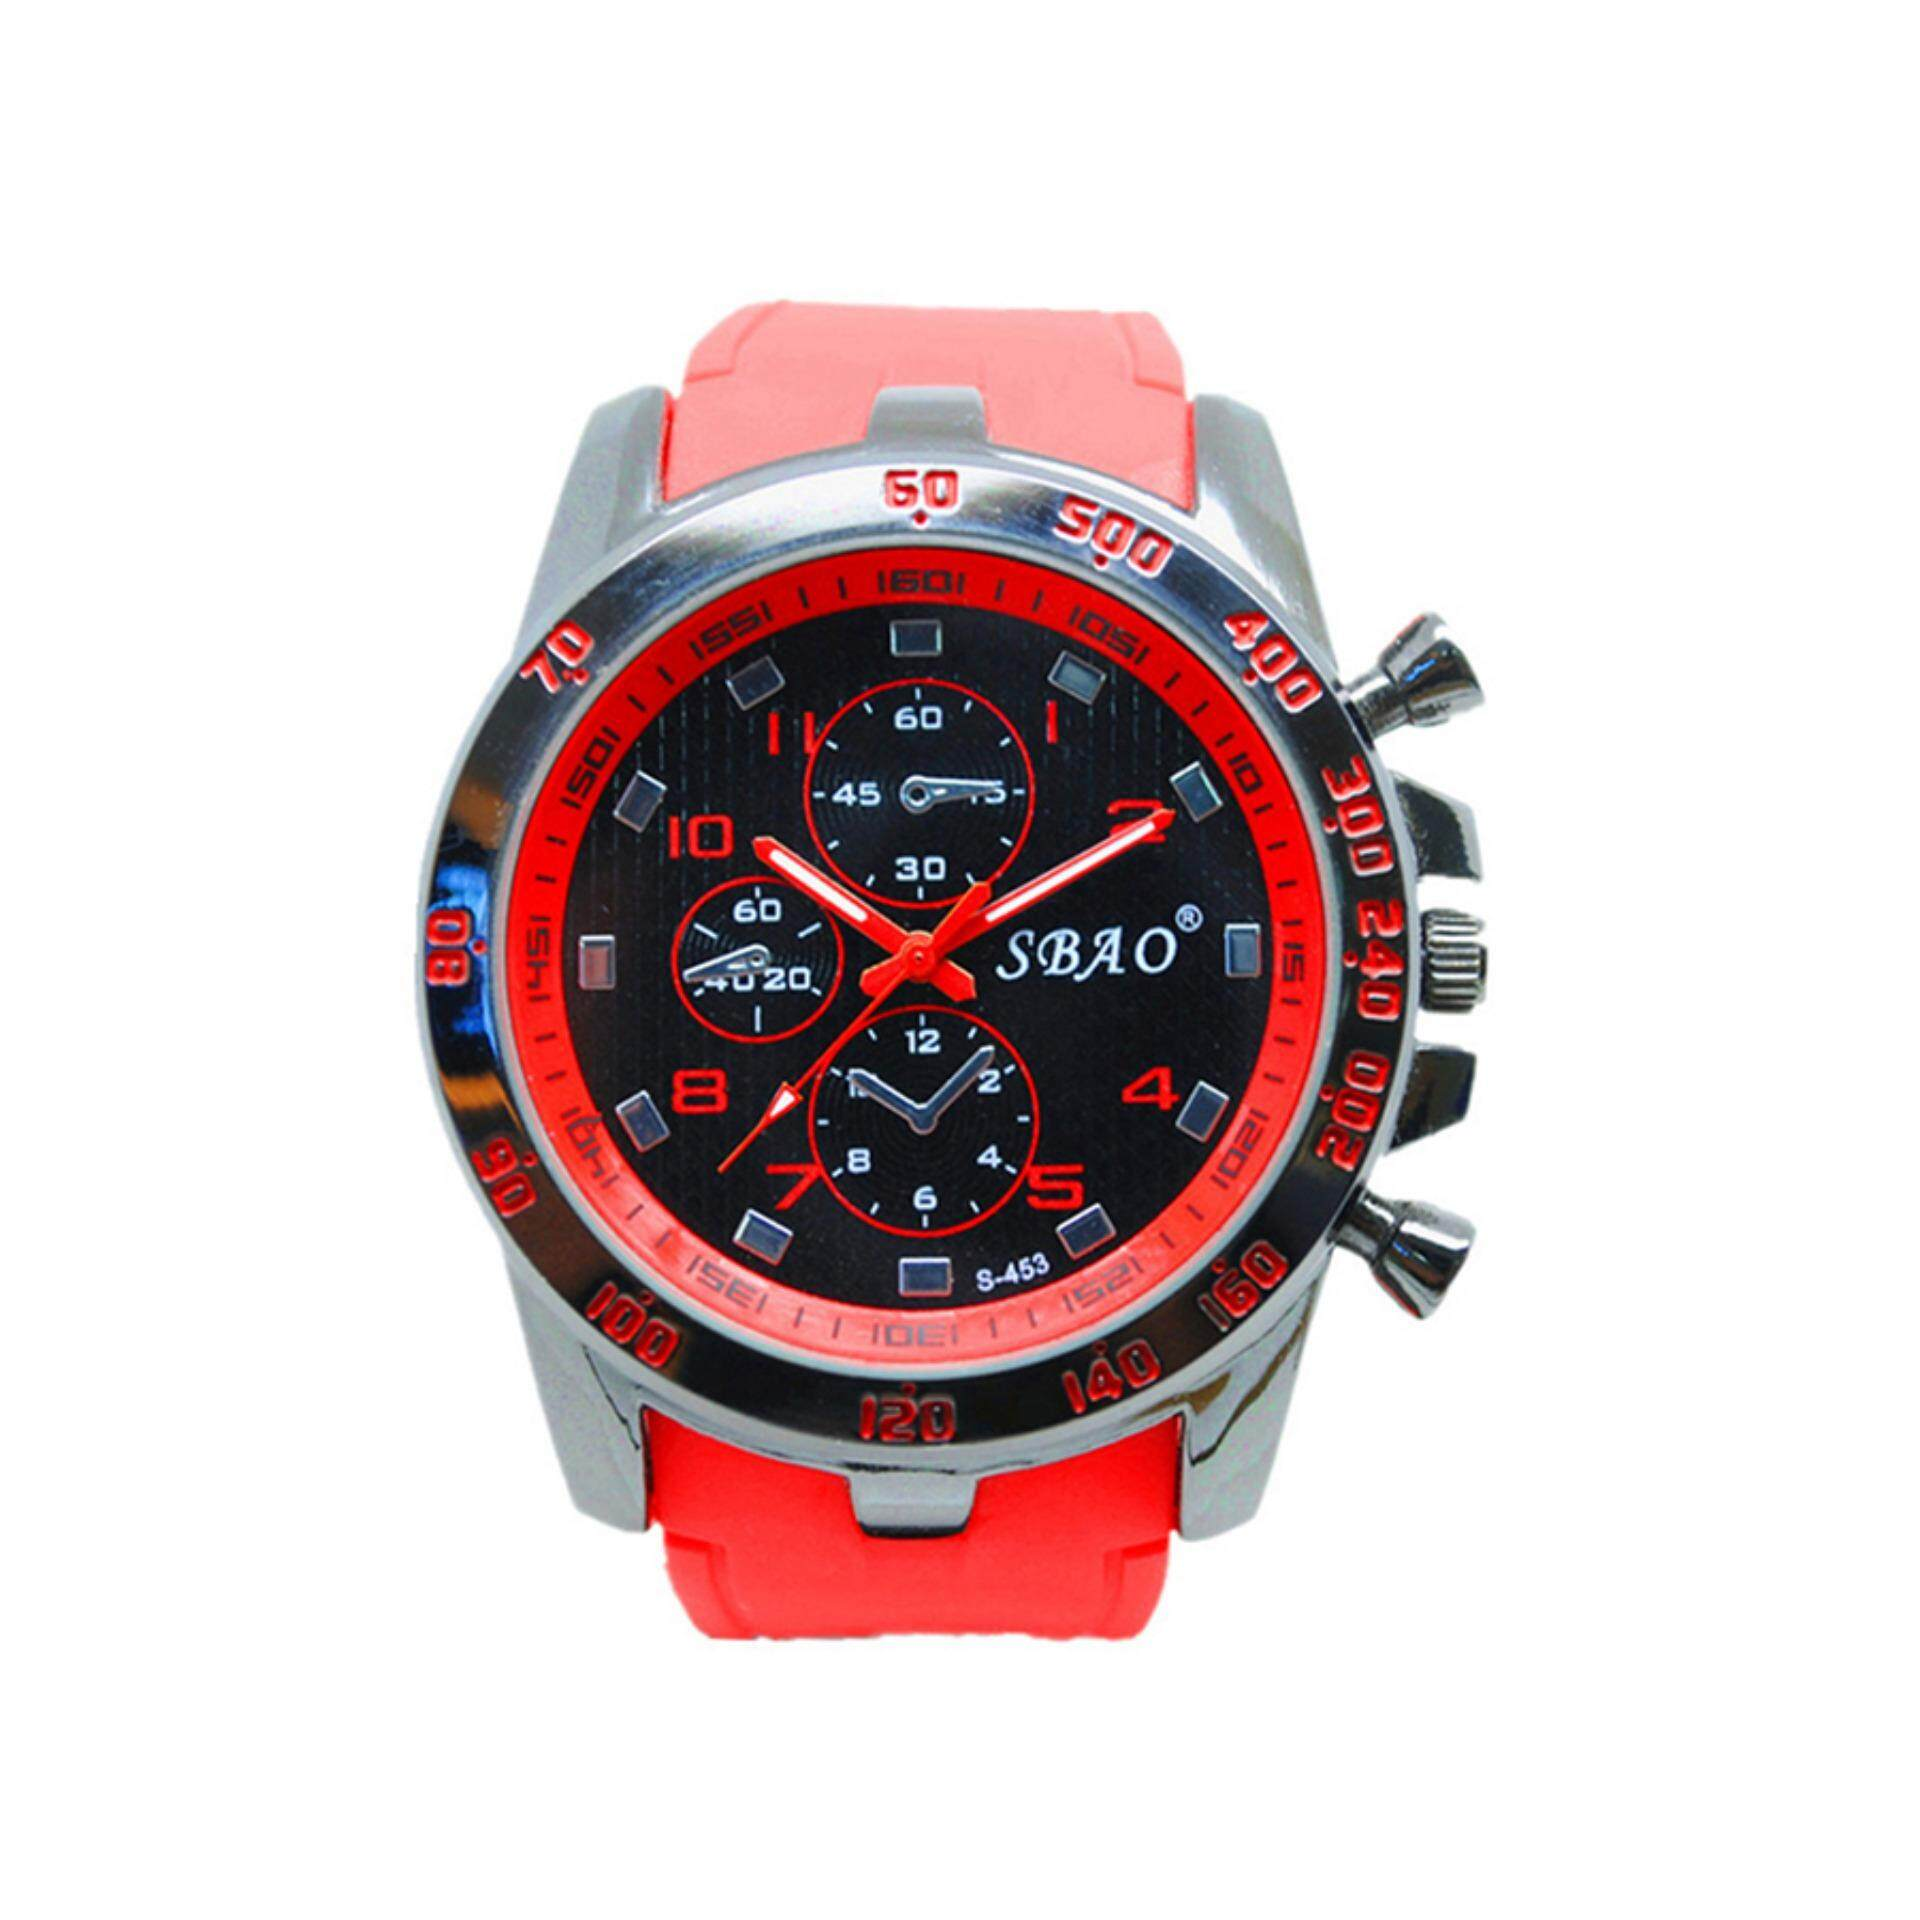 Mens Watch Luxury Stainless Steel Sport Analog Quartz Modern Wrist Watch Red Malaysia